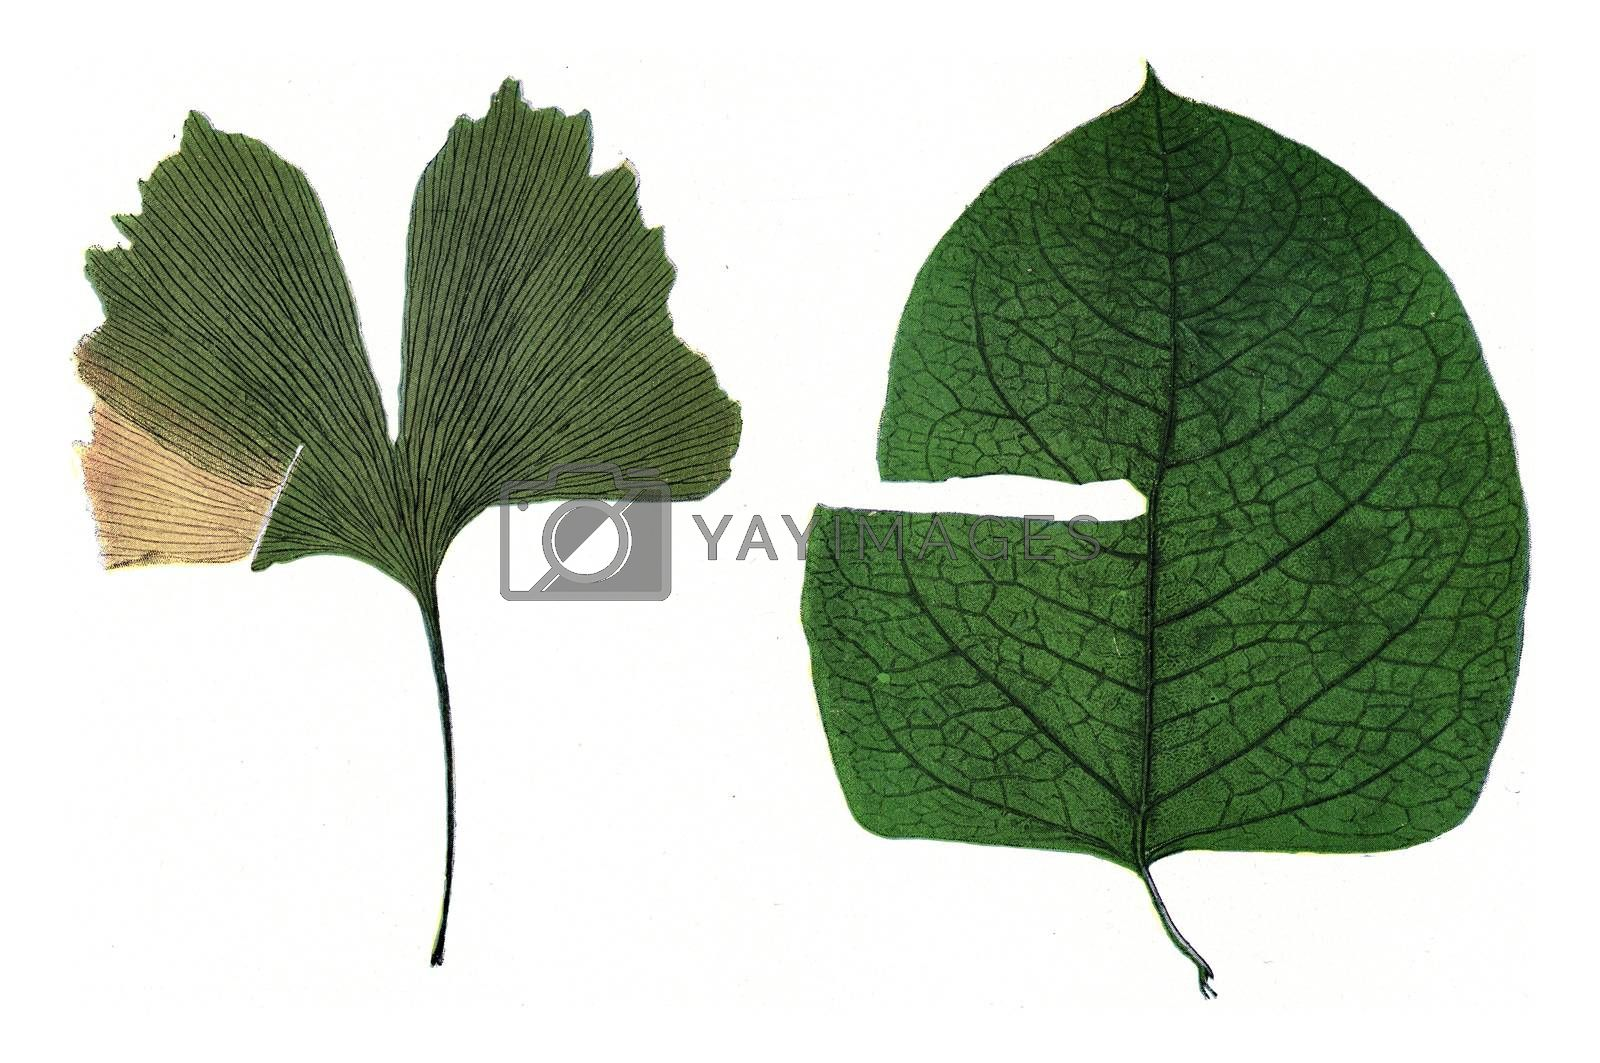 Leaves, with different veins, notched during growth, vintage engraving.